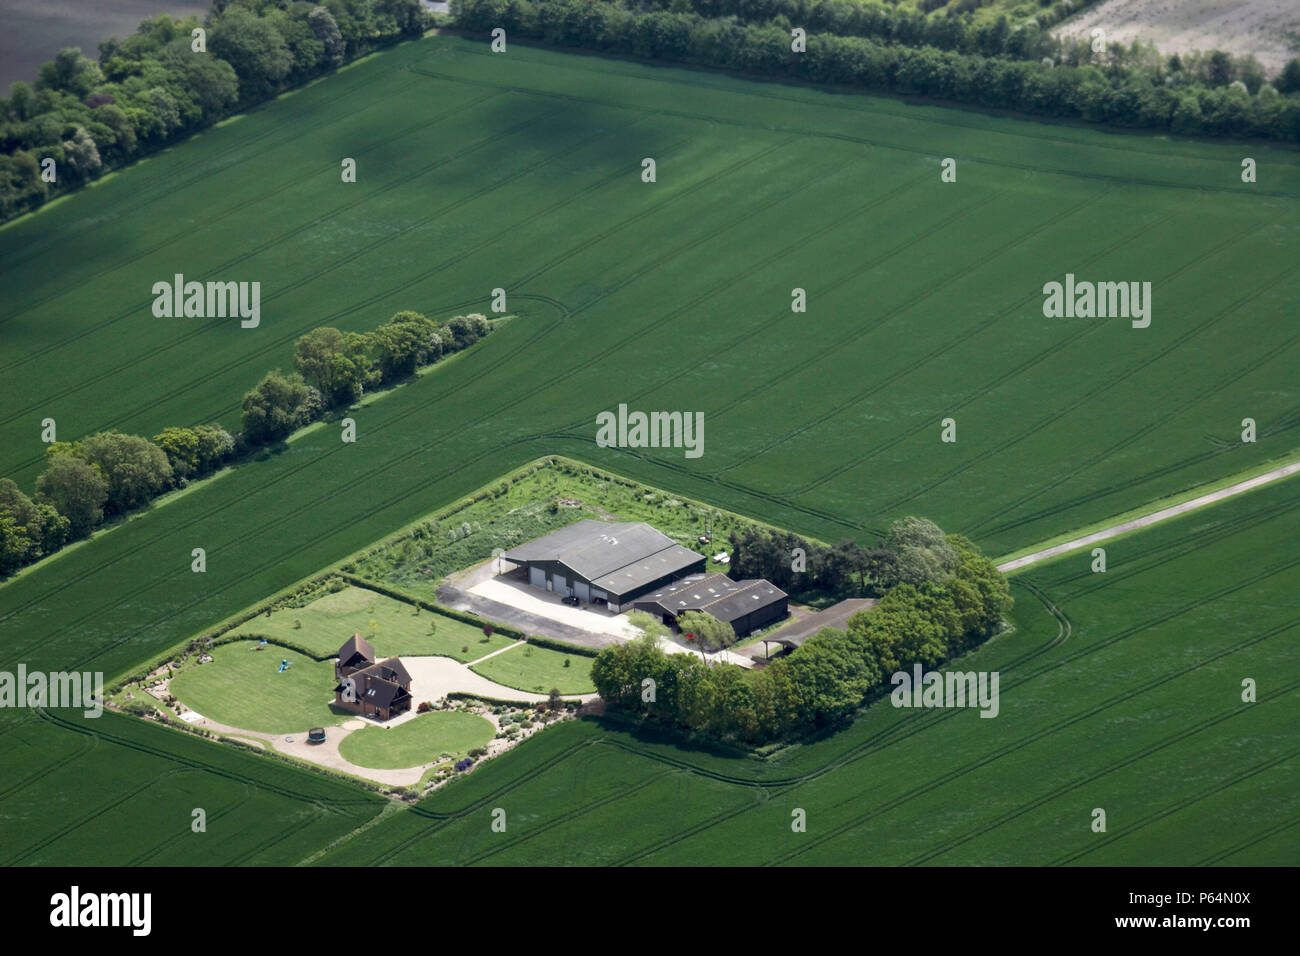 aerial view south of farm building barn and residential house inaerial view south of farm building barn and residential house in chilton oxfordshire, uk